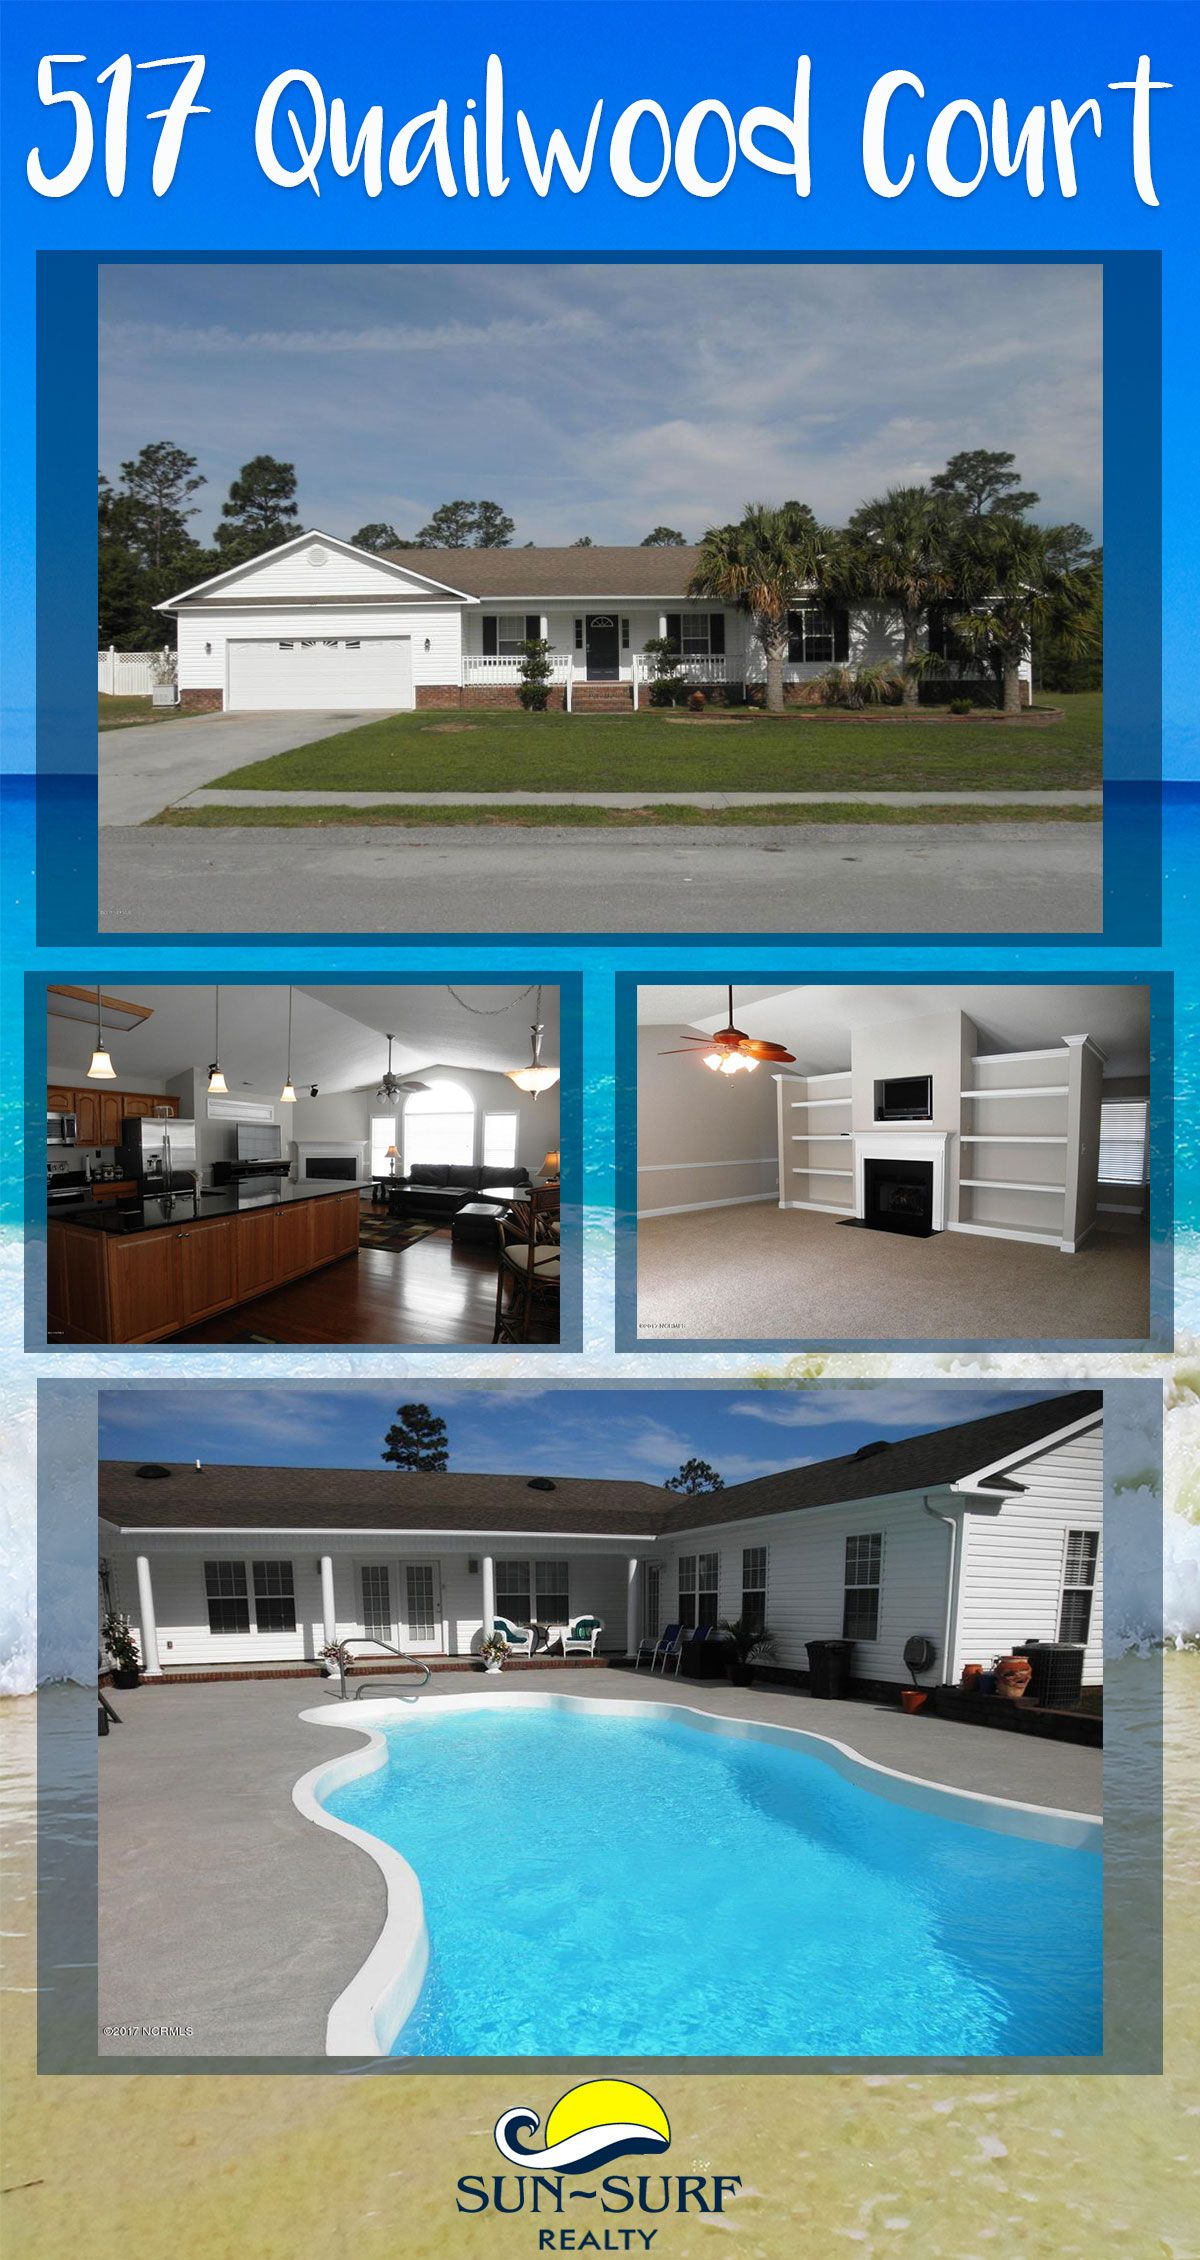 FOR SALE: This spacious and lovely home has an in-ground pool and a ...